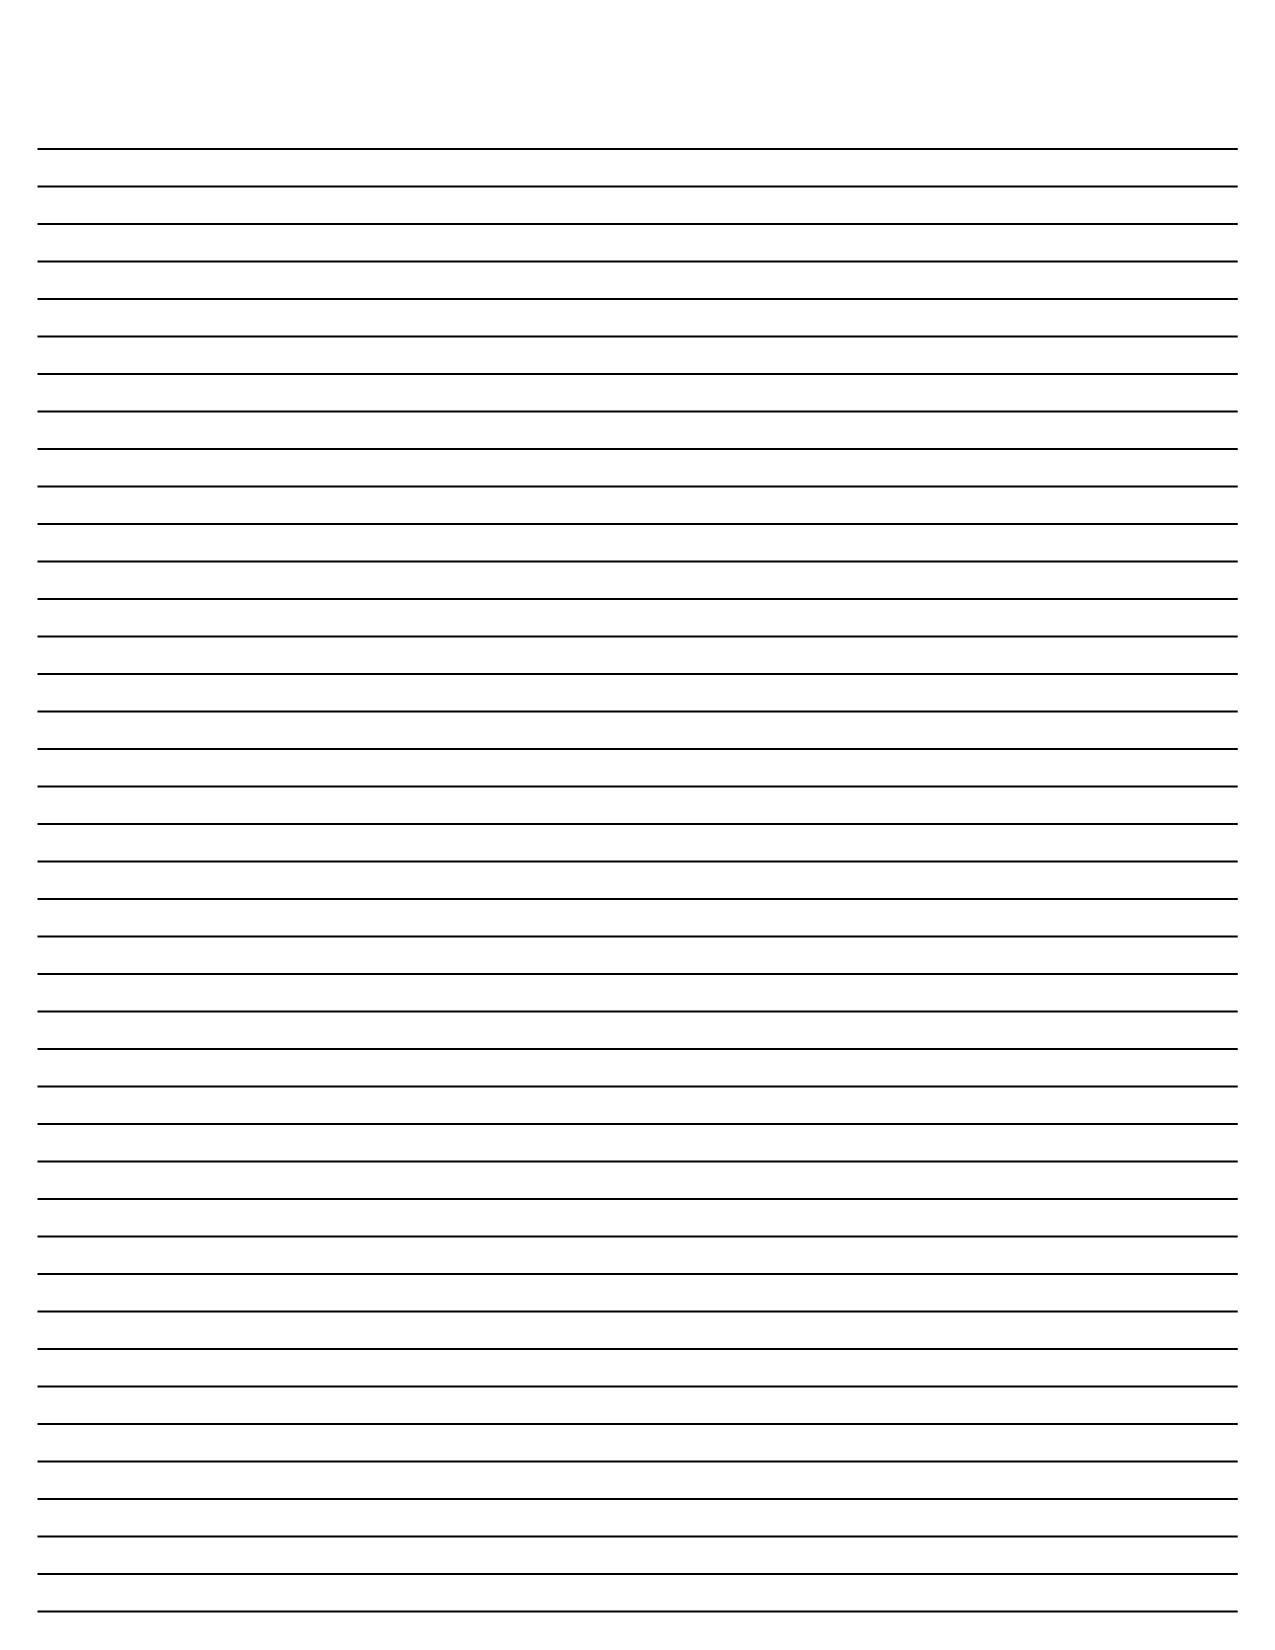 Search Results For Elementary Lined Writing Paper